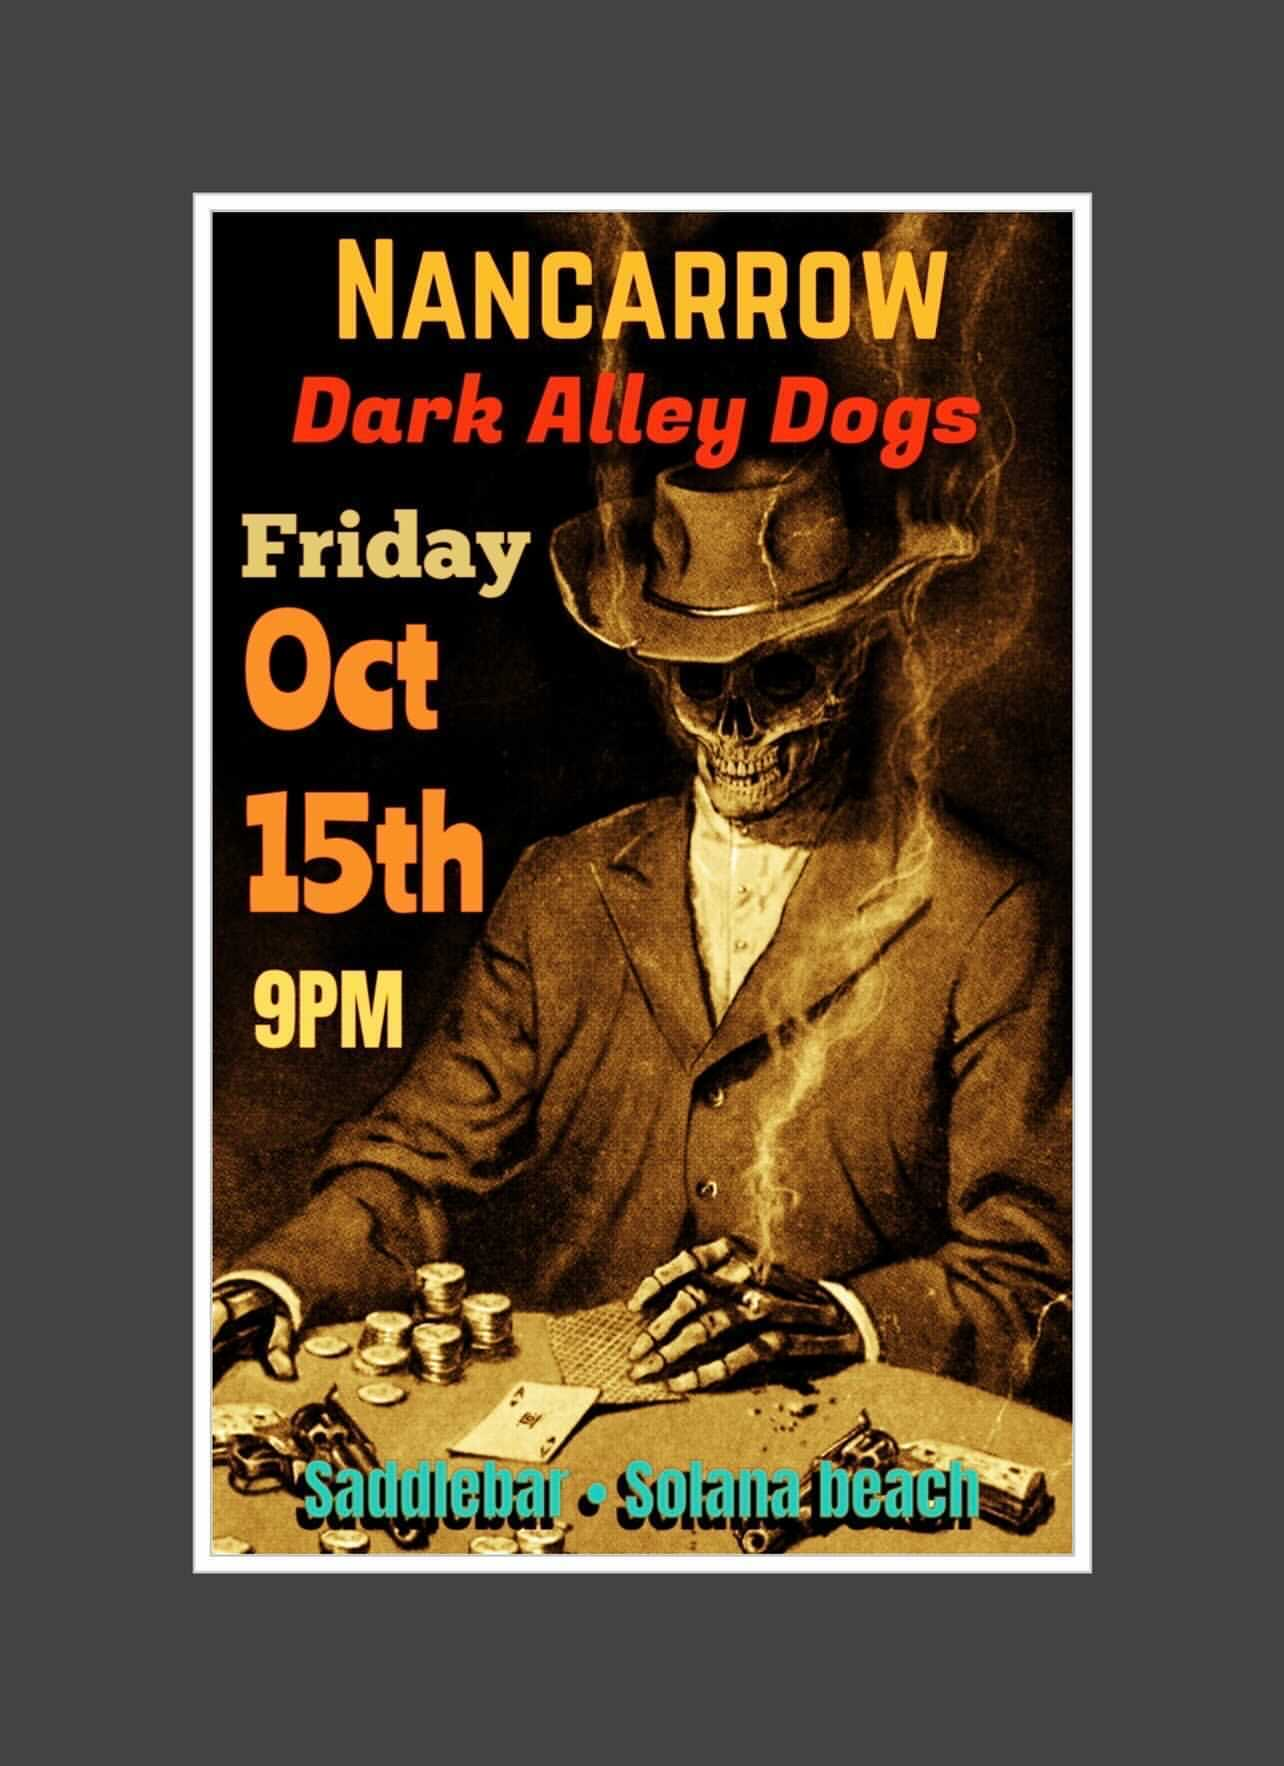 Friday, October 15th, 2021 - 9pm - NANCARROW with Dark Alley Dogs opening - **LIVE**